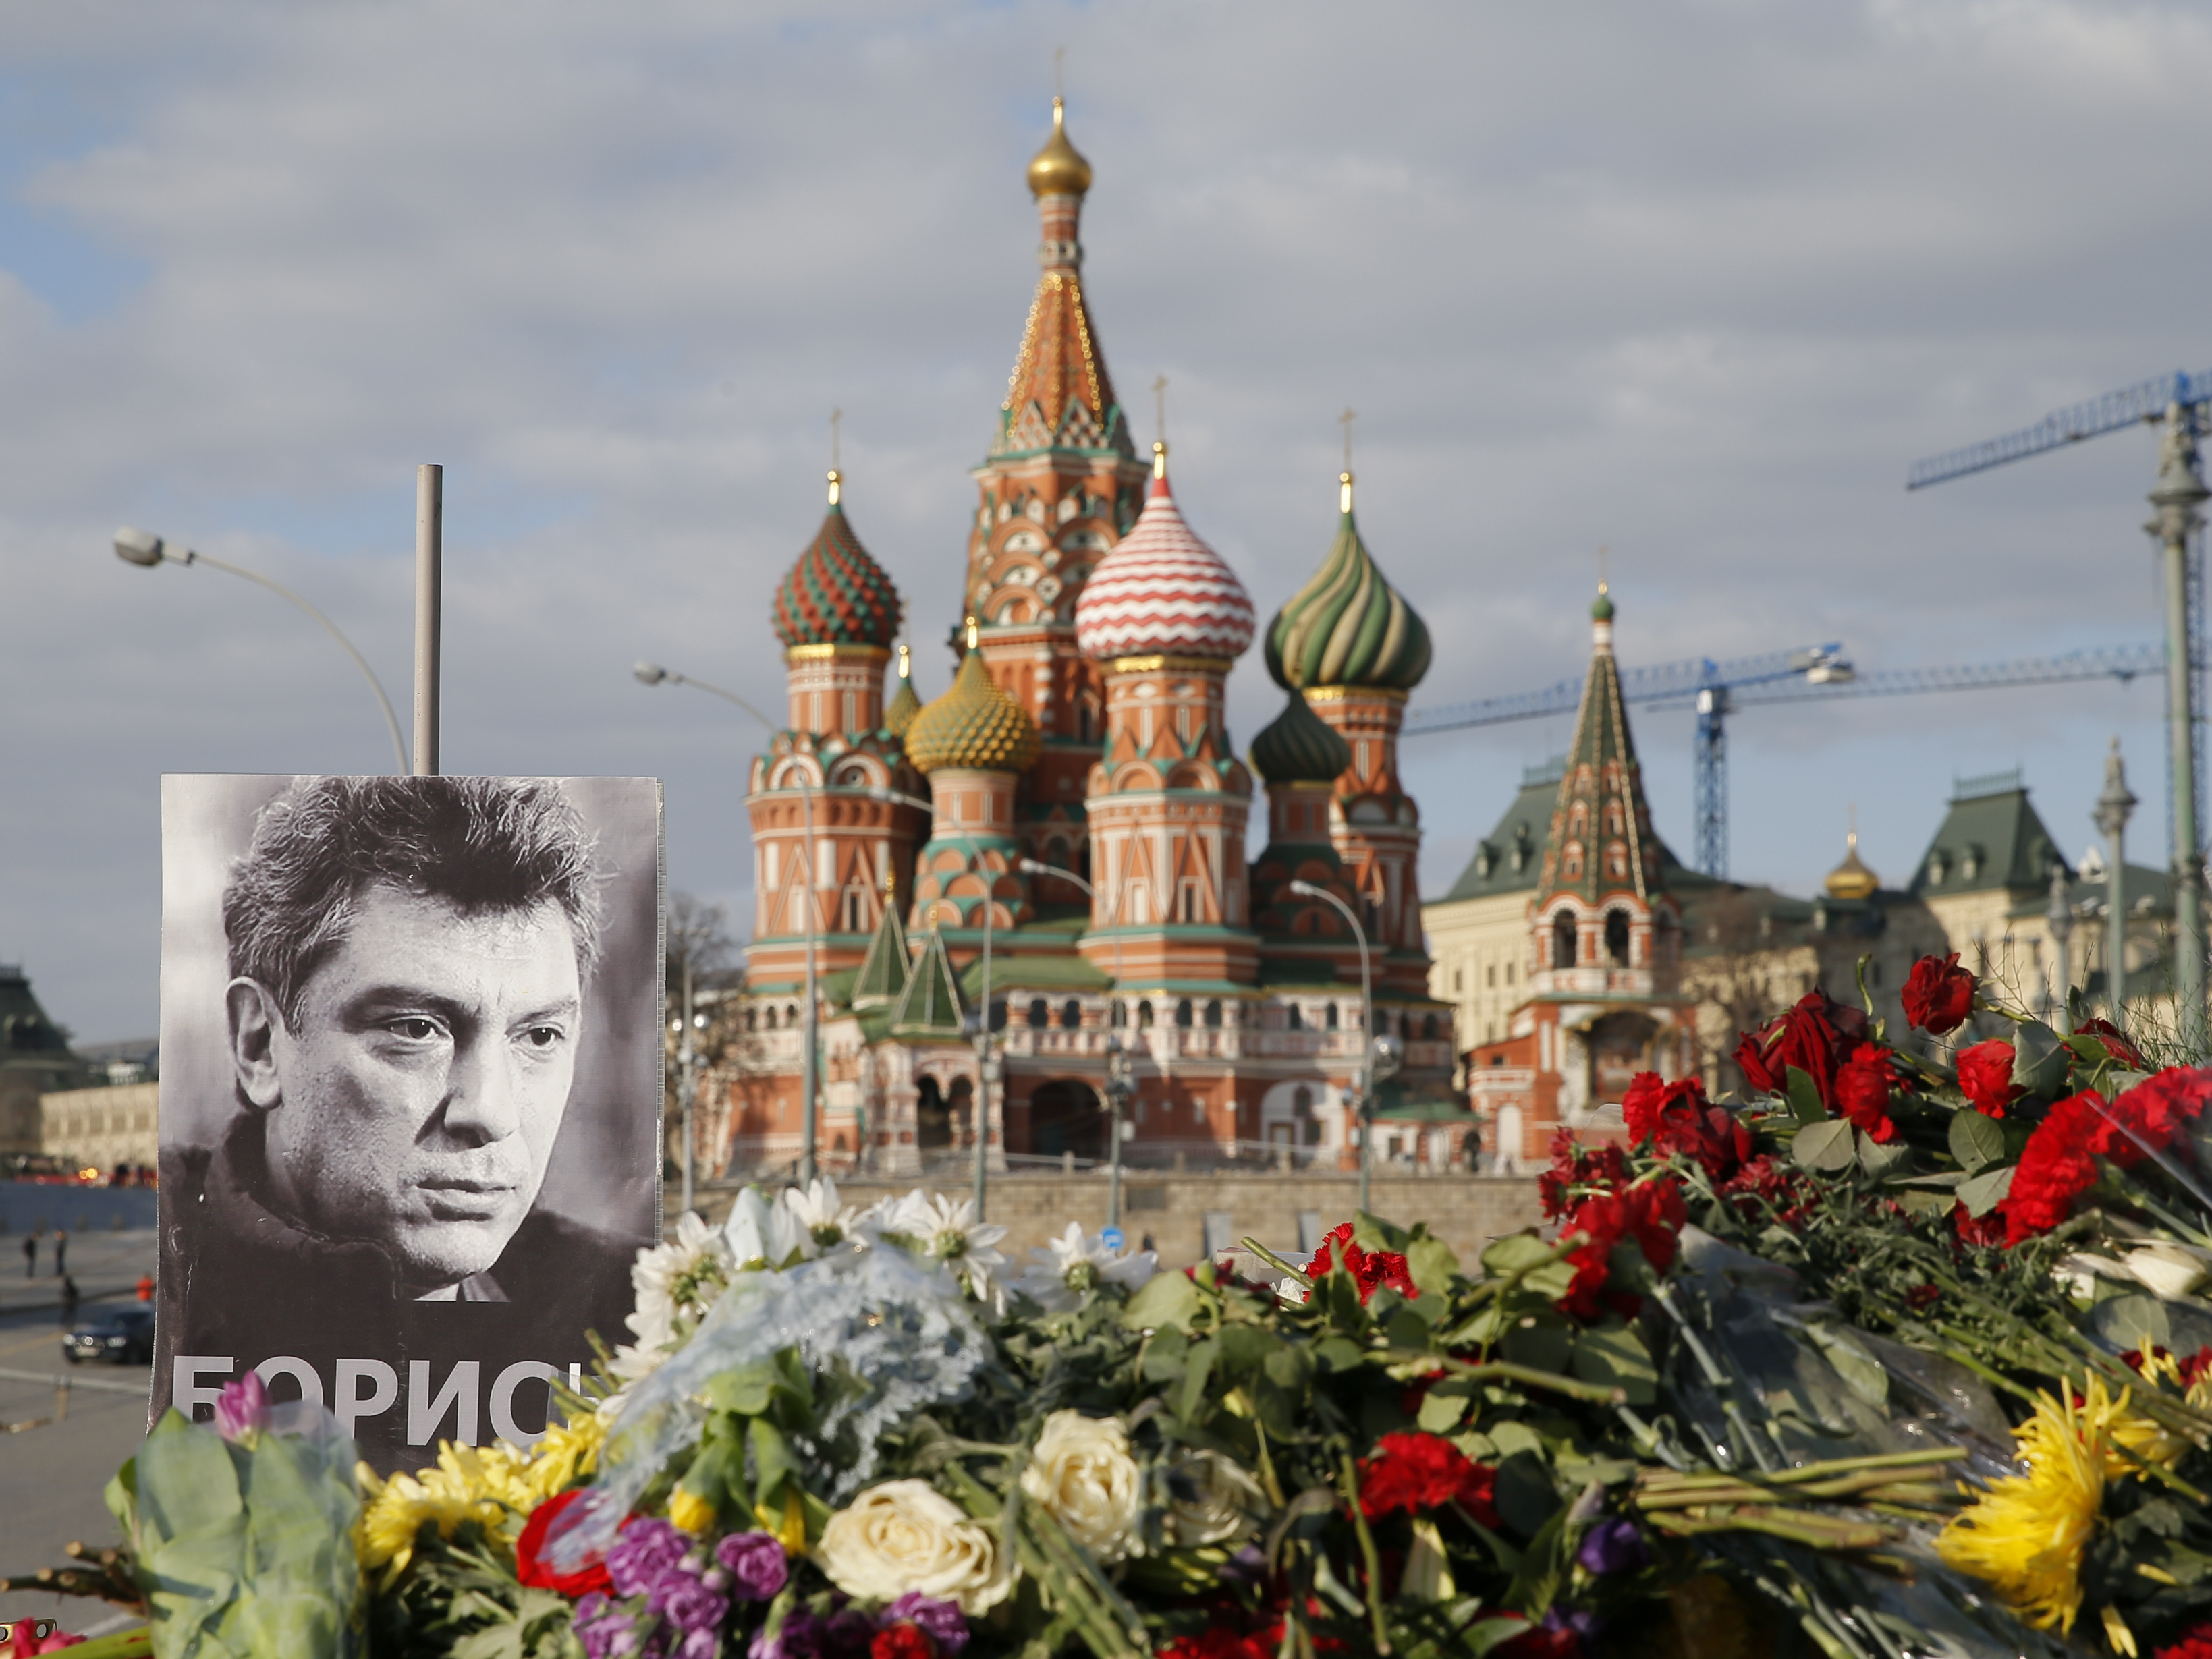 Russia Arrests 2 In Connection With Nemtsov Murder